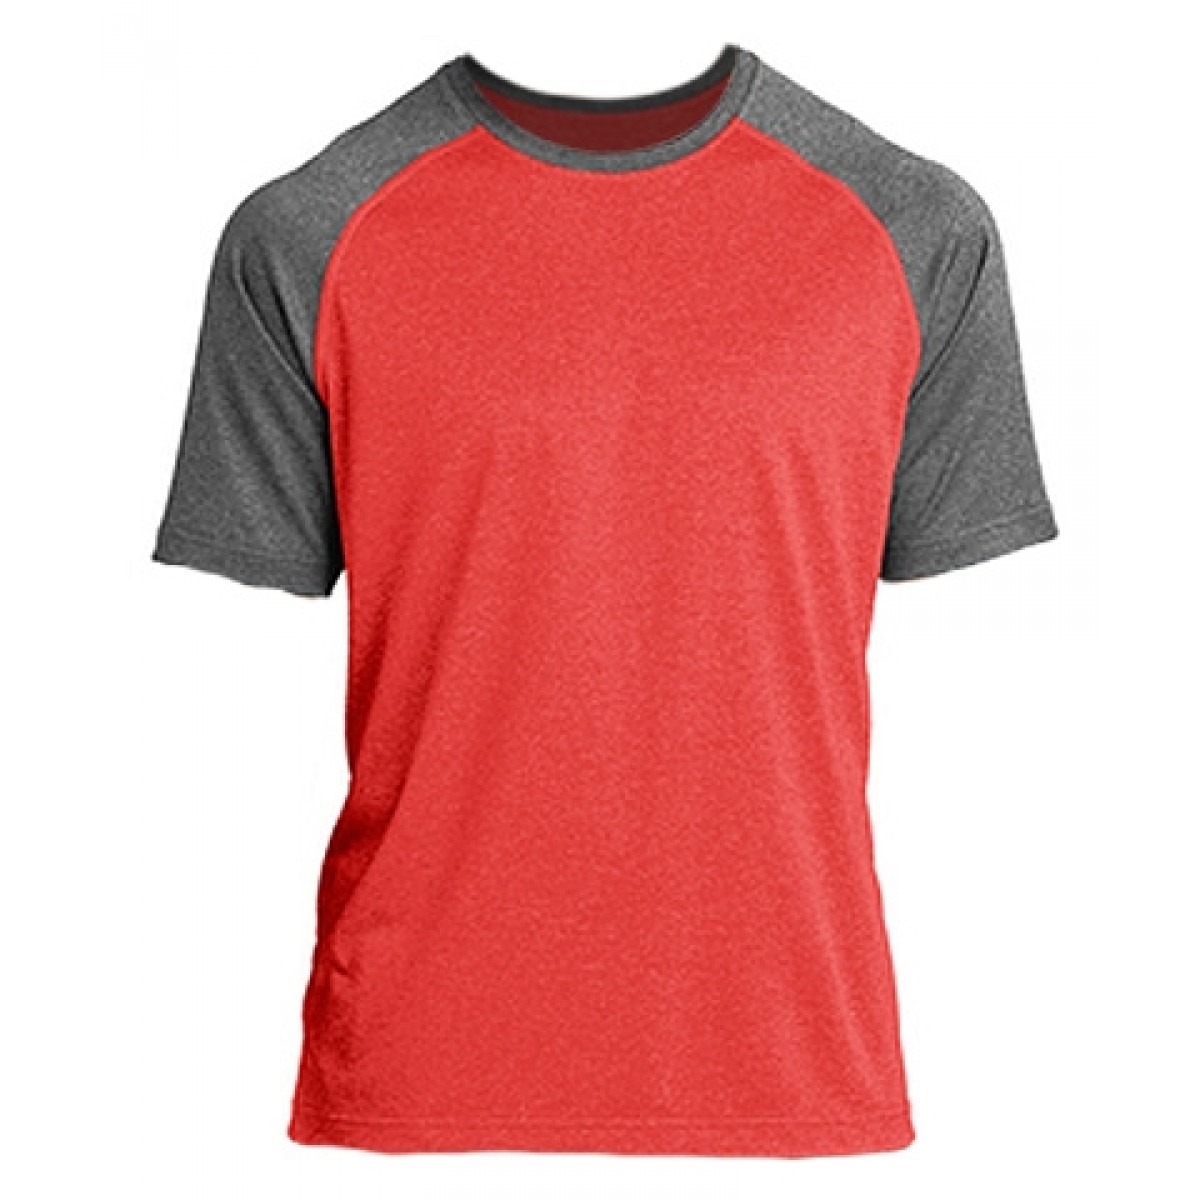 Heather on Heather Dri-Fit Tee-Heathered Red-2XL